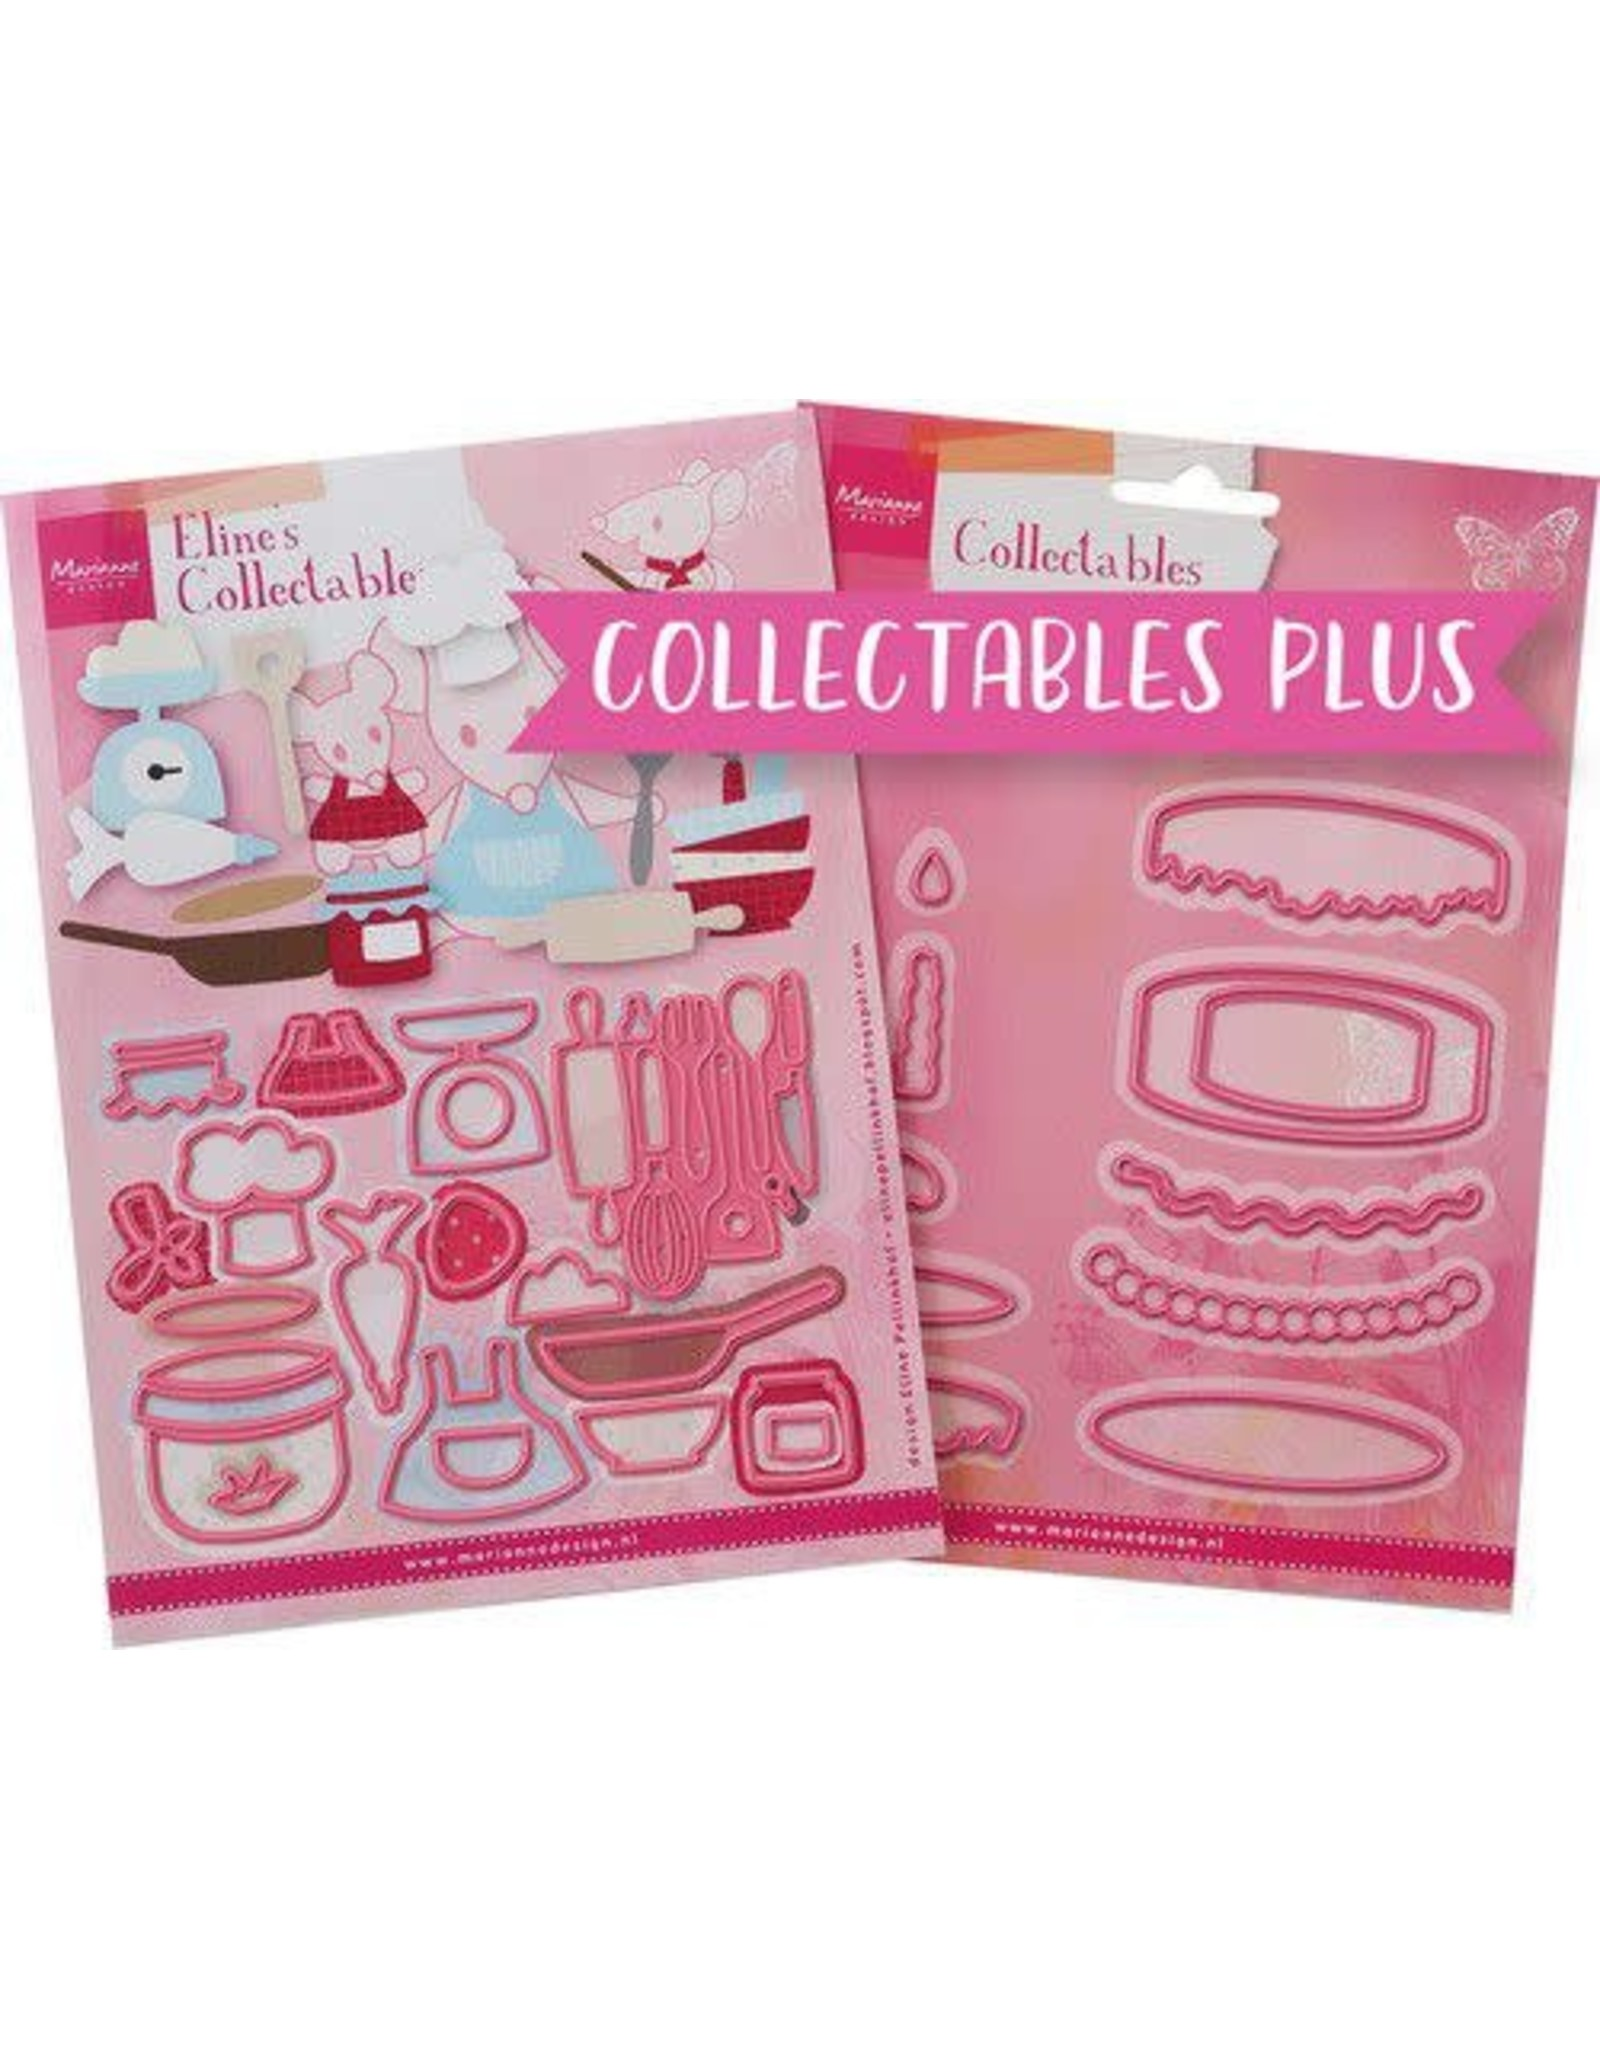 Marianne Design Marianne D Collectable plus Collectable plus - Baking Fun PA4129 COL1493 - COL1322